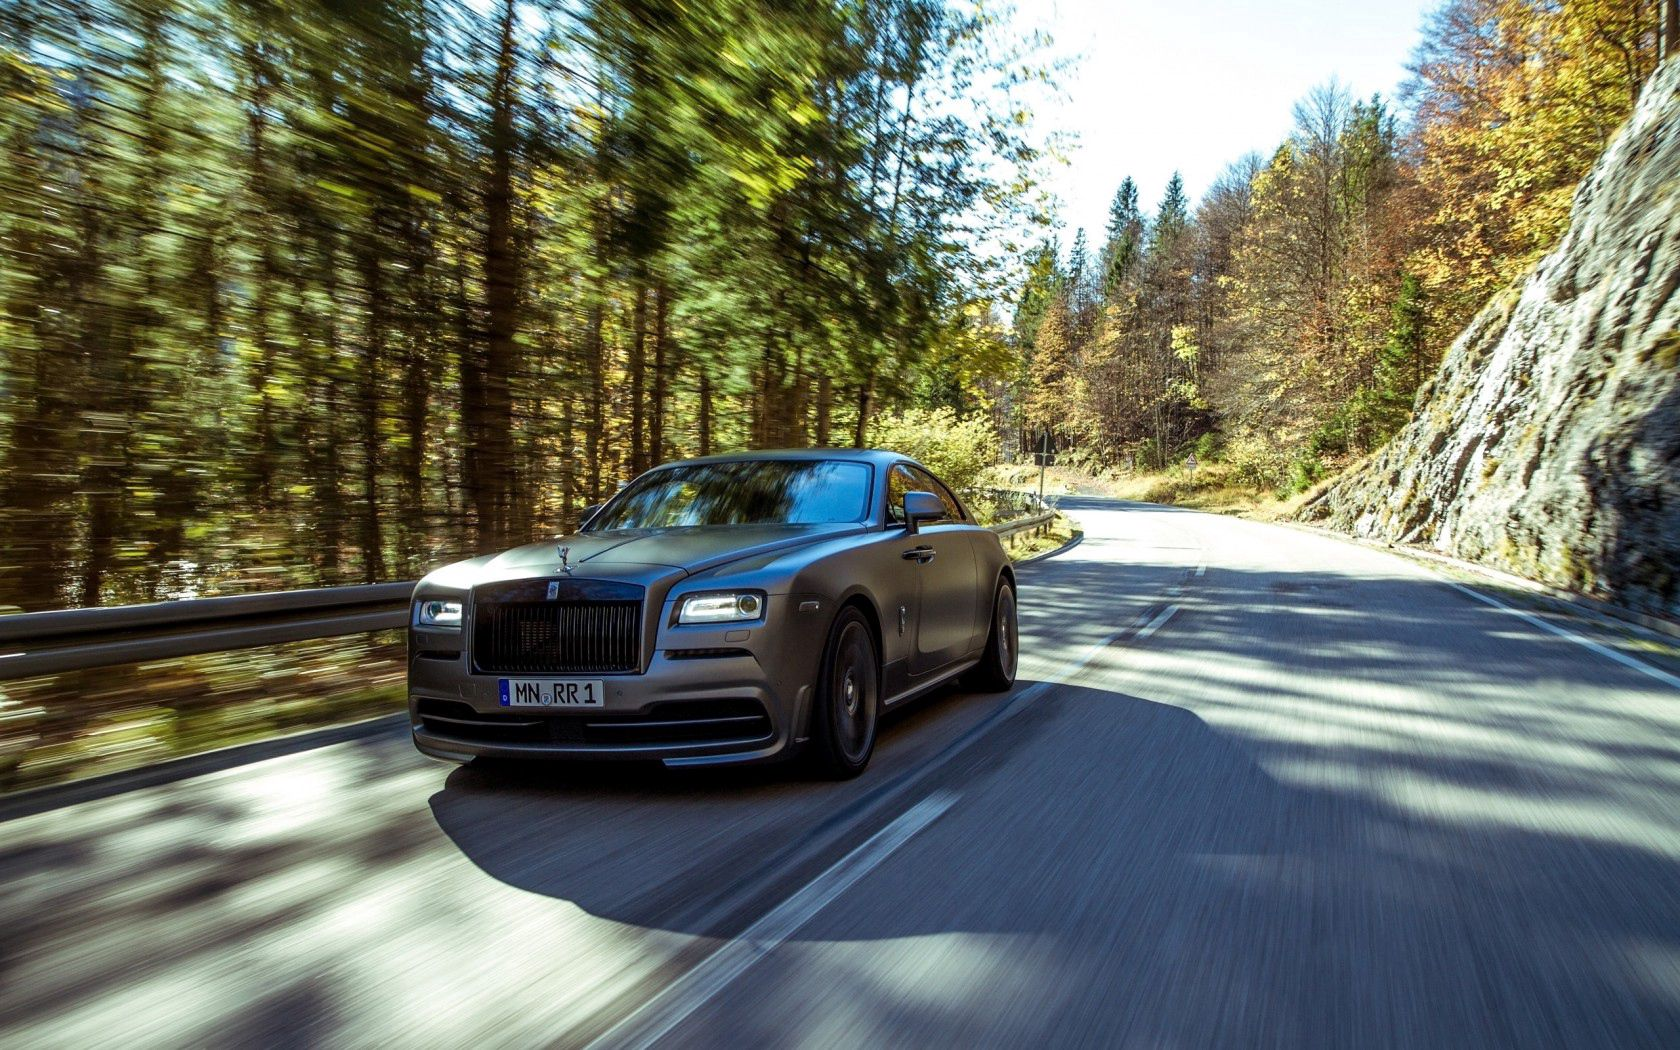 124368 download wallpaper Rolls-Royce, Cars, Traffic, Movement, Speed, Wraith, Spofec screensavers and pictures for free